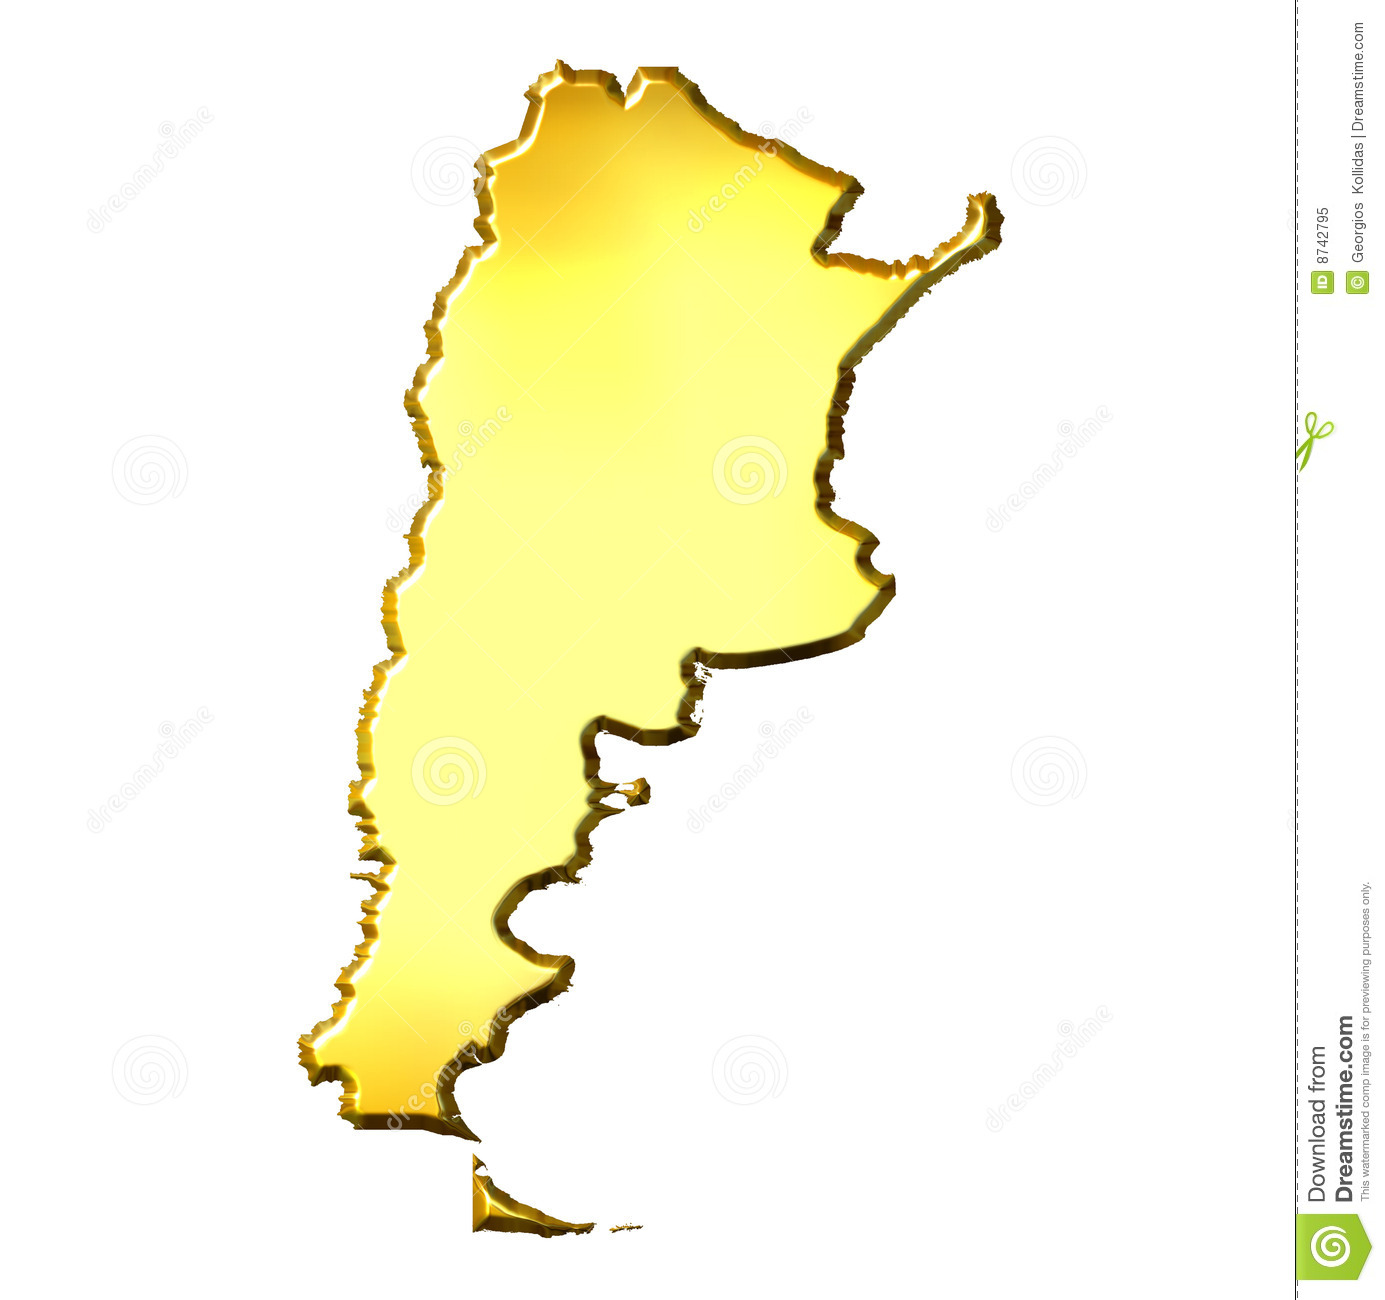 Argentina D Golden Map Royalty Free Stock Photo Image - Argentina 3d map